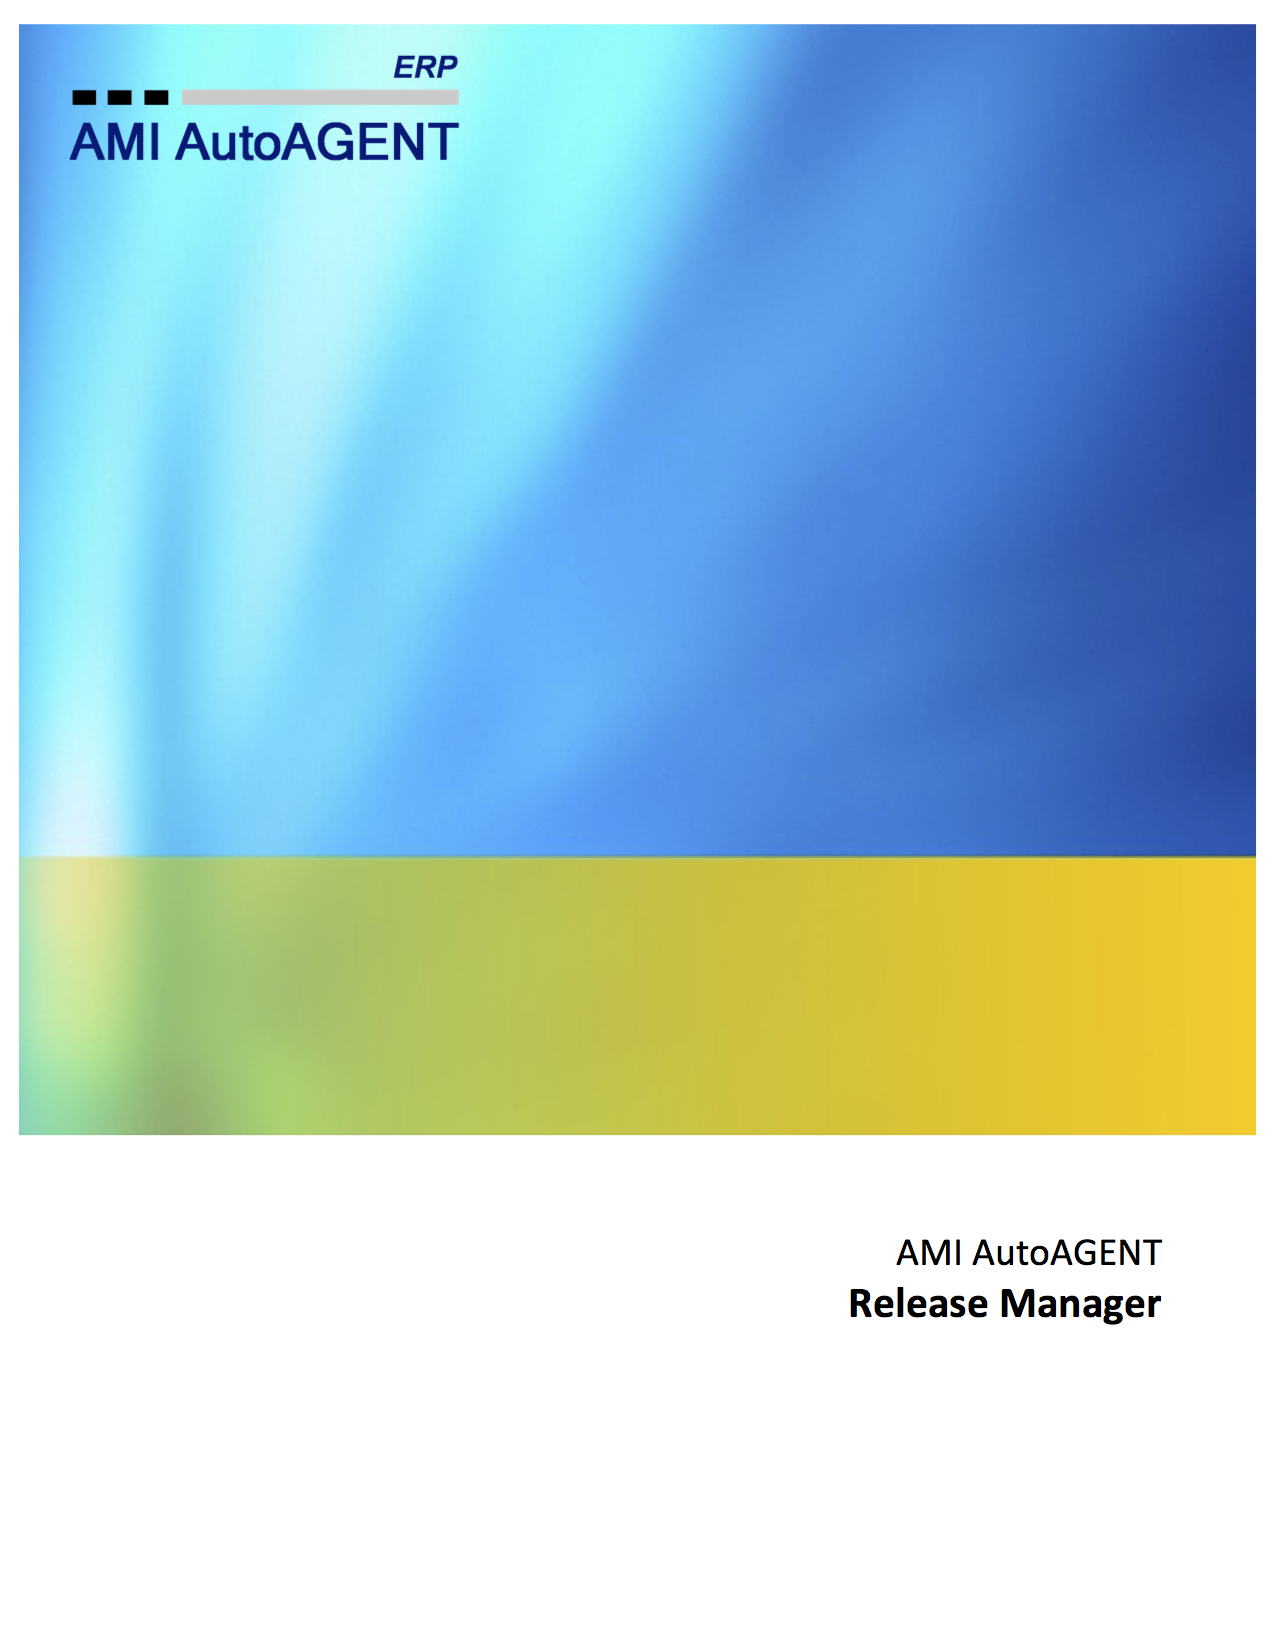 Release Manager